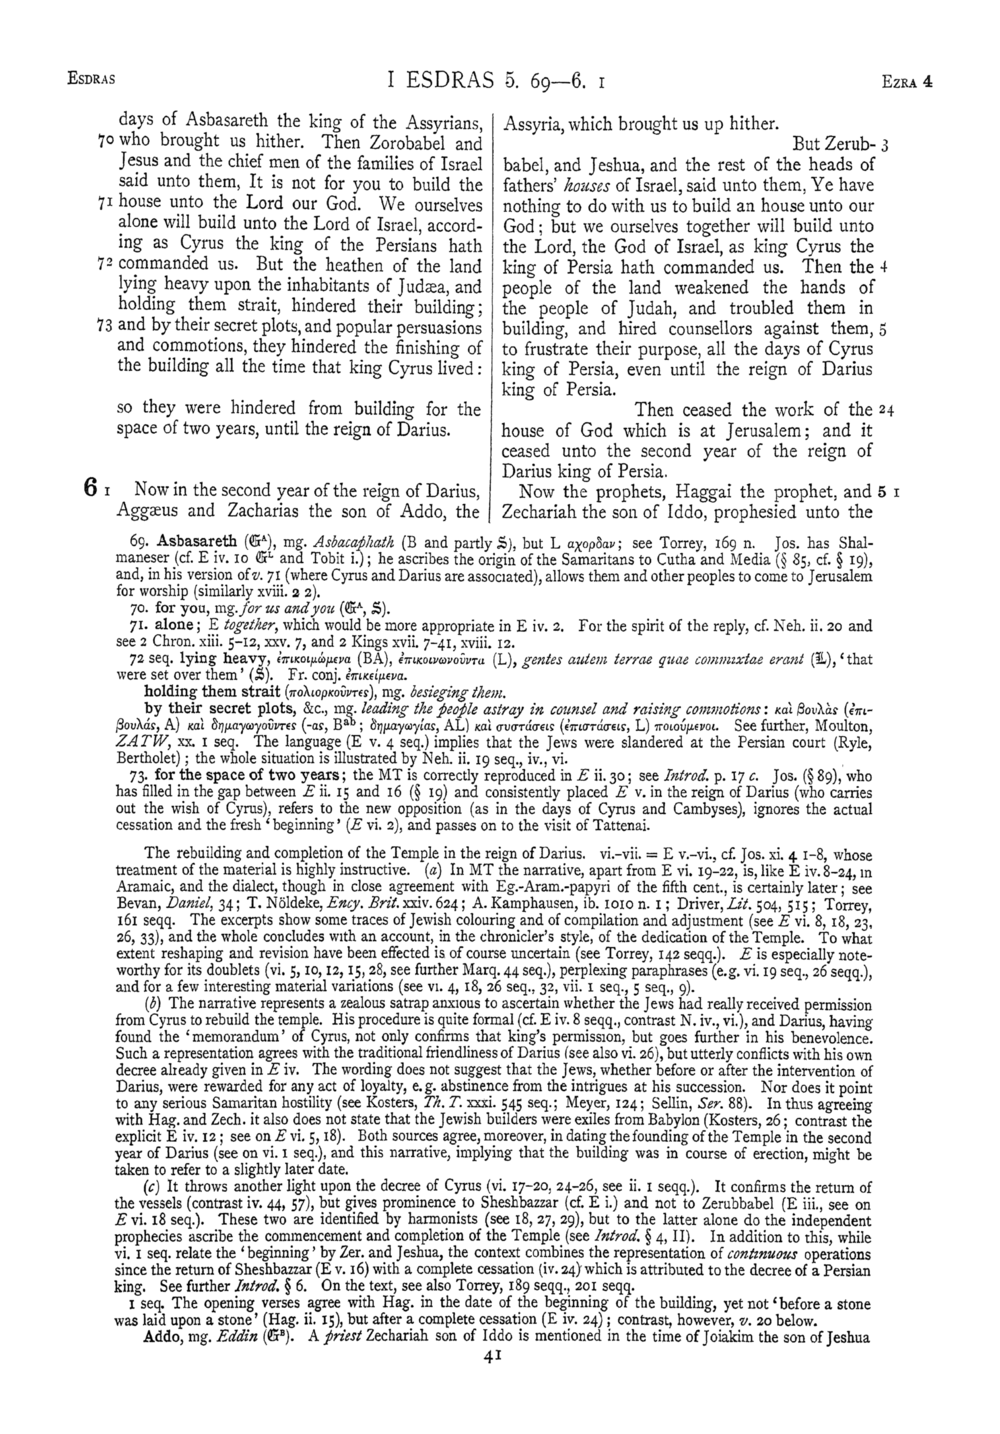 Image of page 41